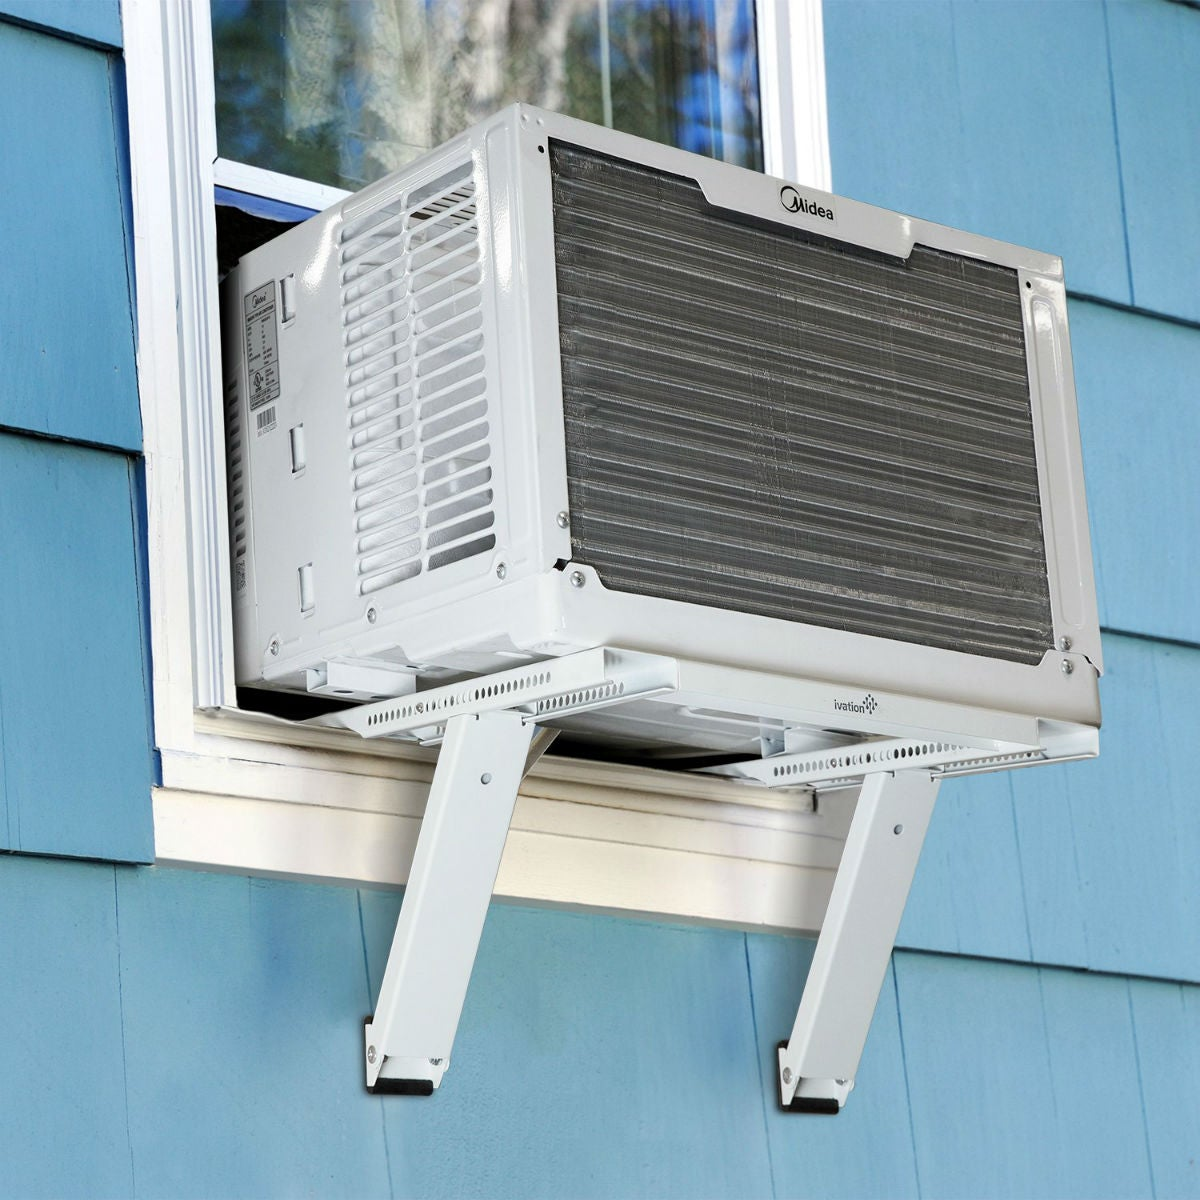 Installing a Window AC? Heed These 10 Dos and Don'ts | Bob Vila